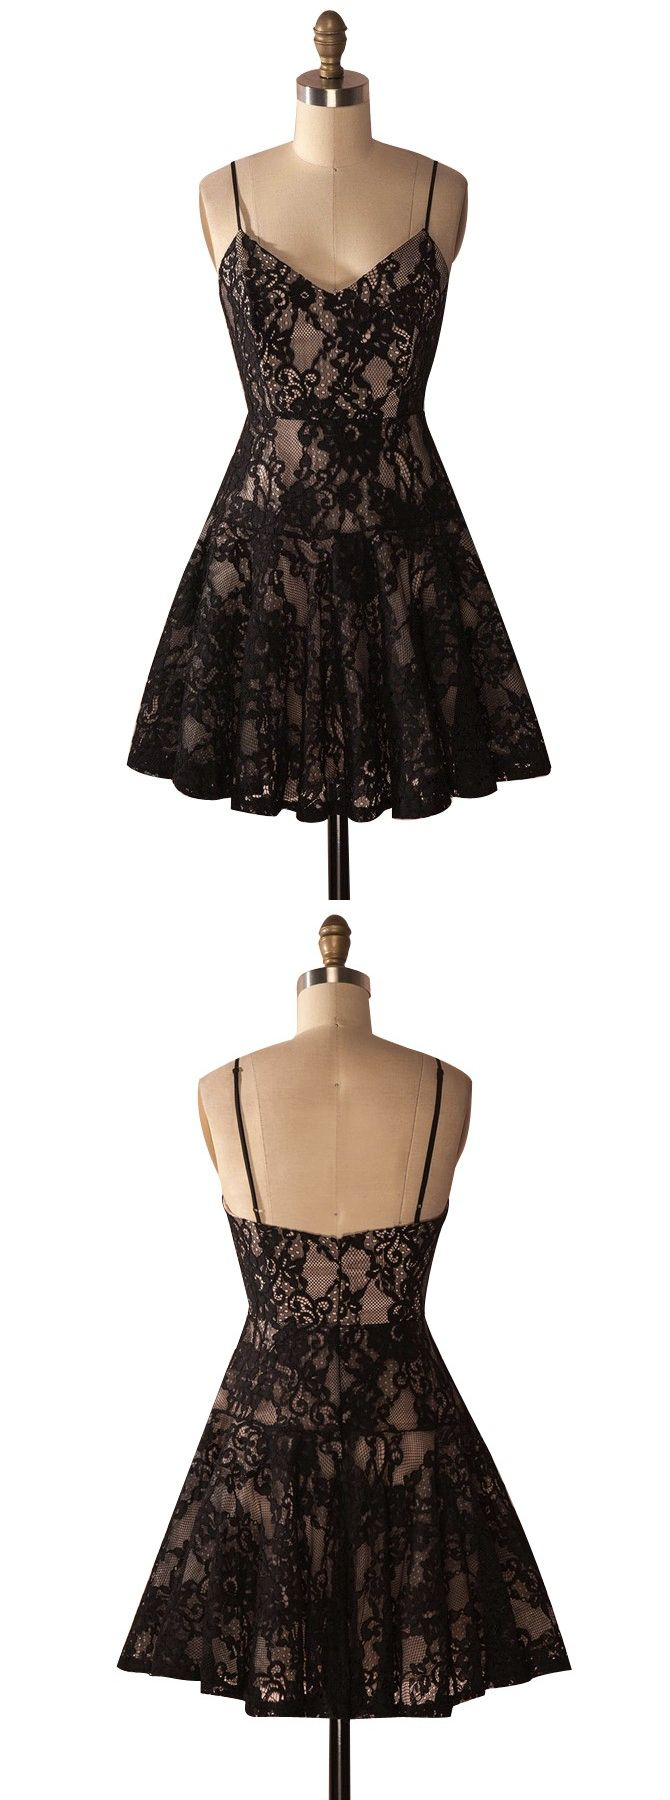 Aline spaghetti straps black short lace homecoming dress short